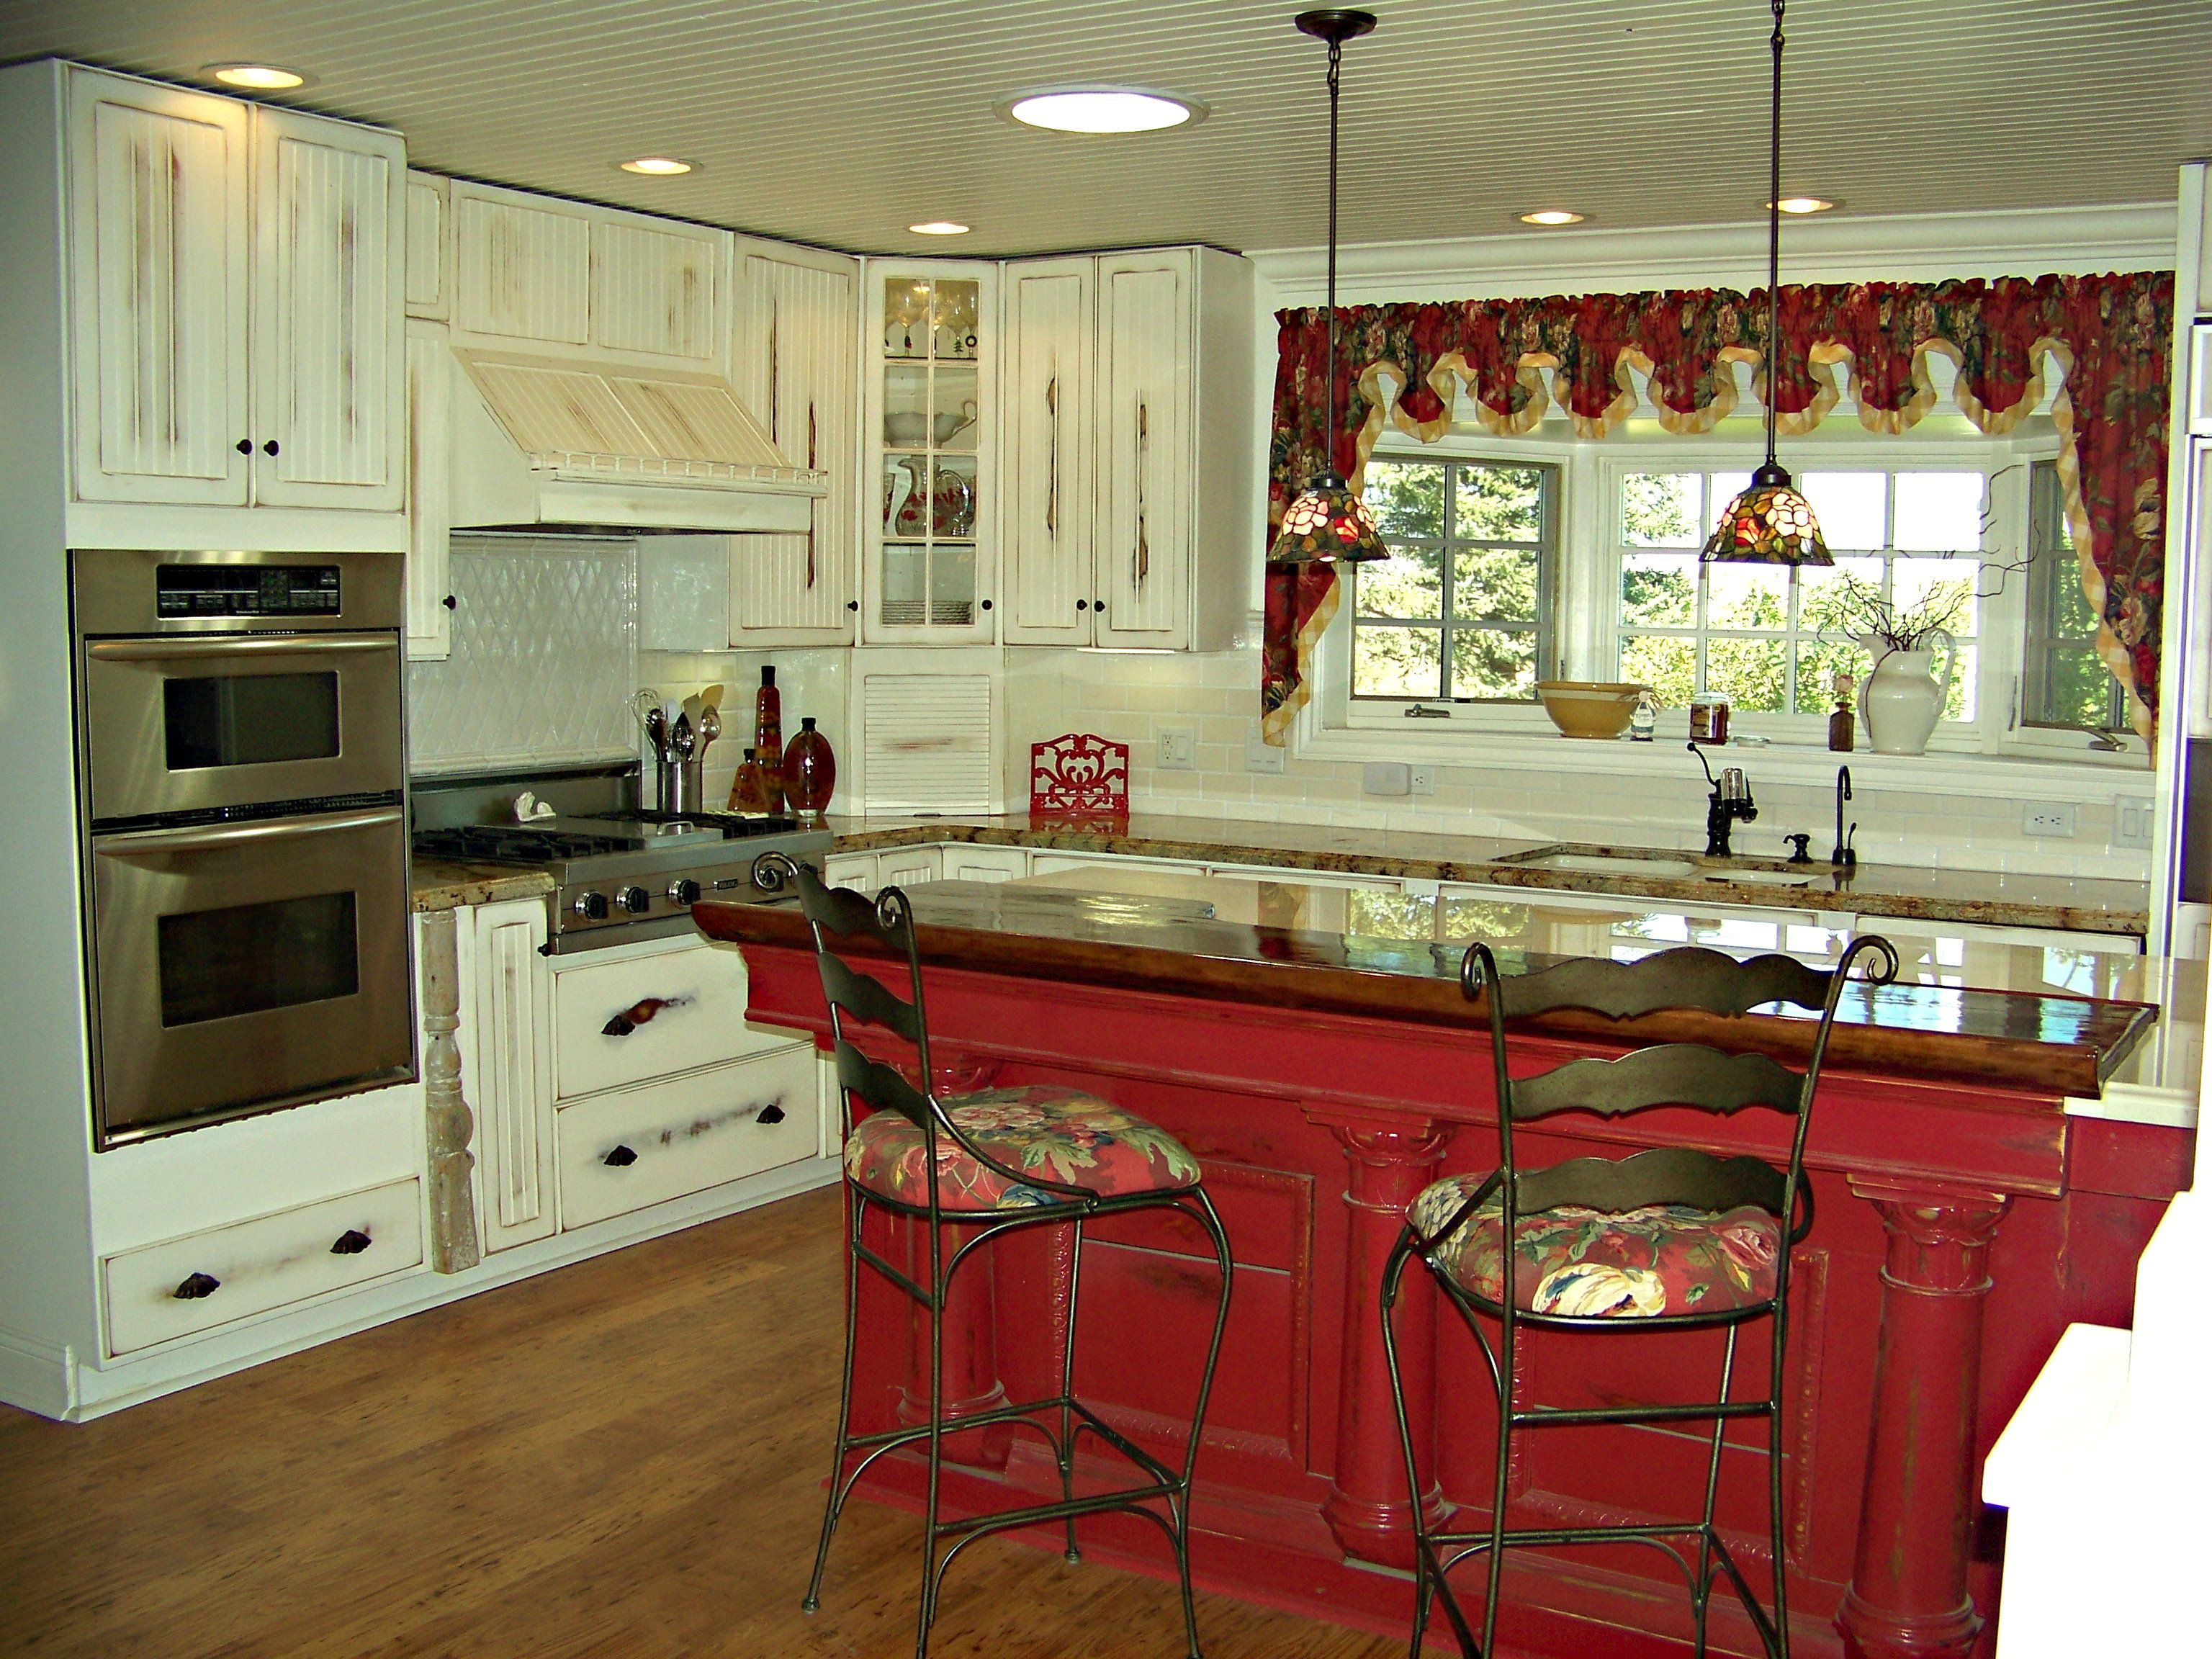 Red Island White Distressed Cabinets Bead Board Ceiling Love This Kitchen Beadboard Kitchen White Distressed Cabinets Red And White Kitchen Cabinets